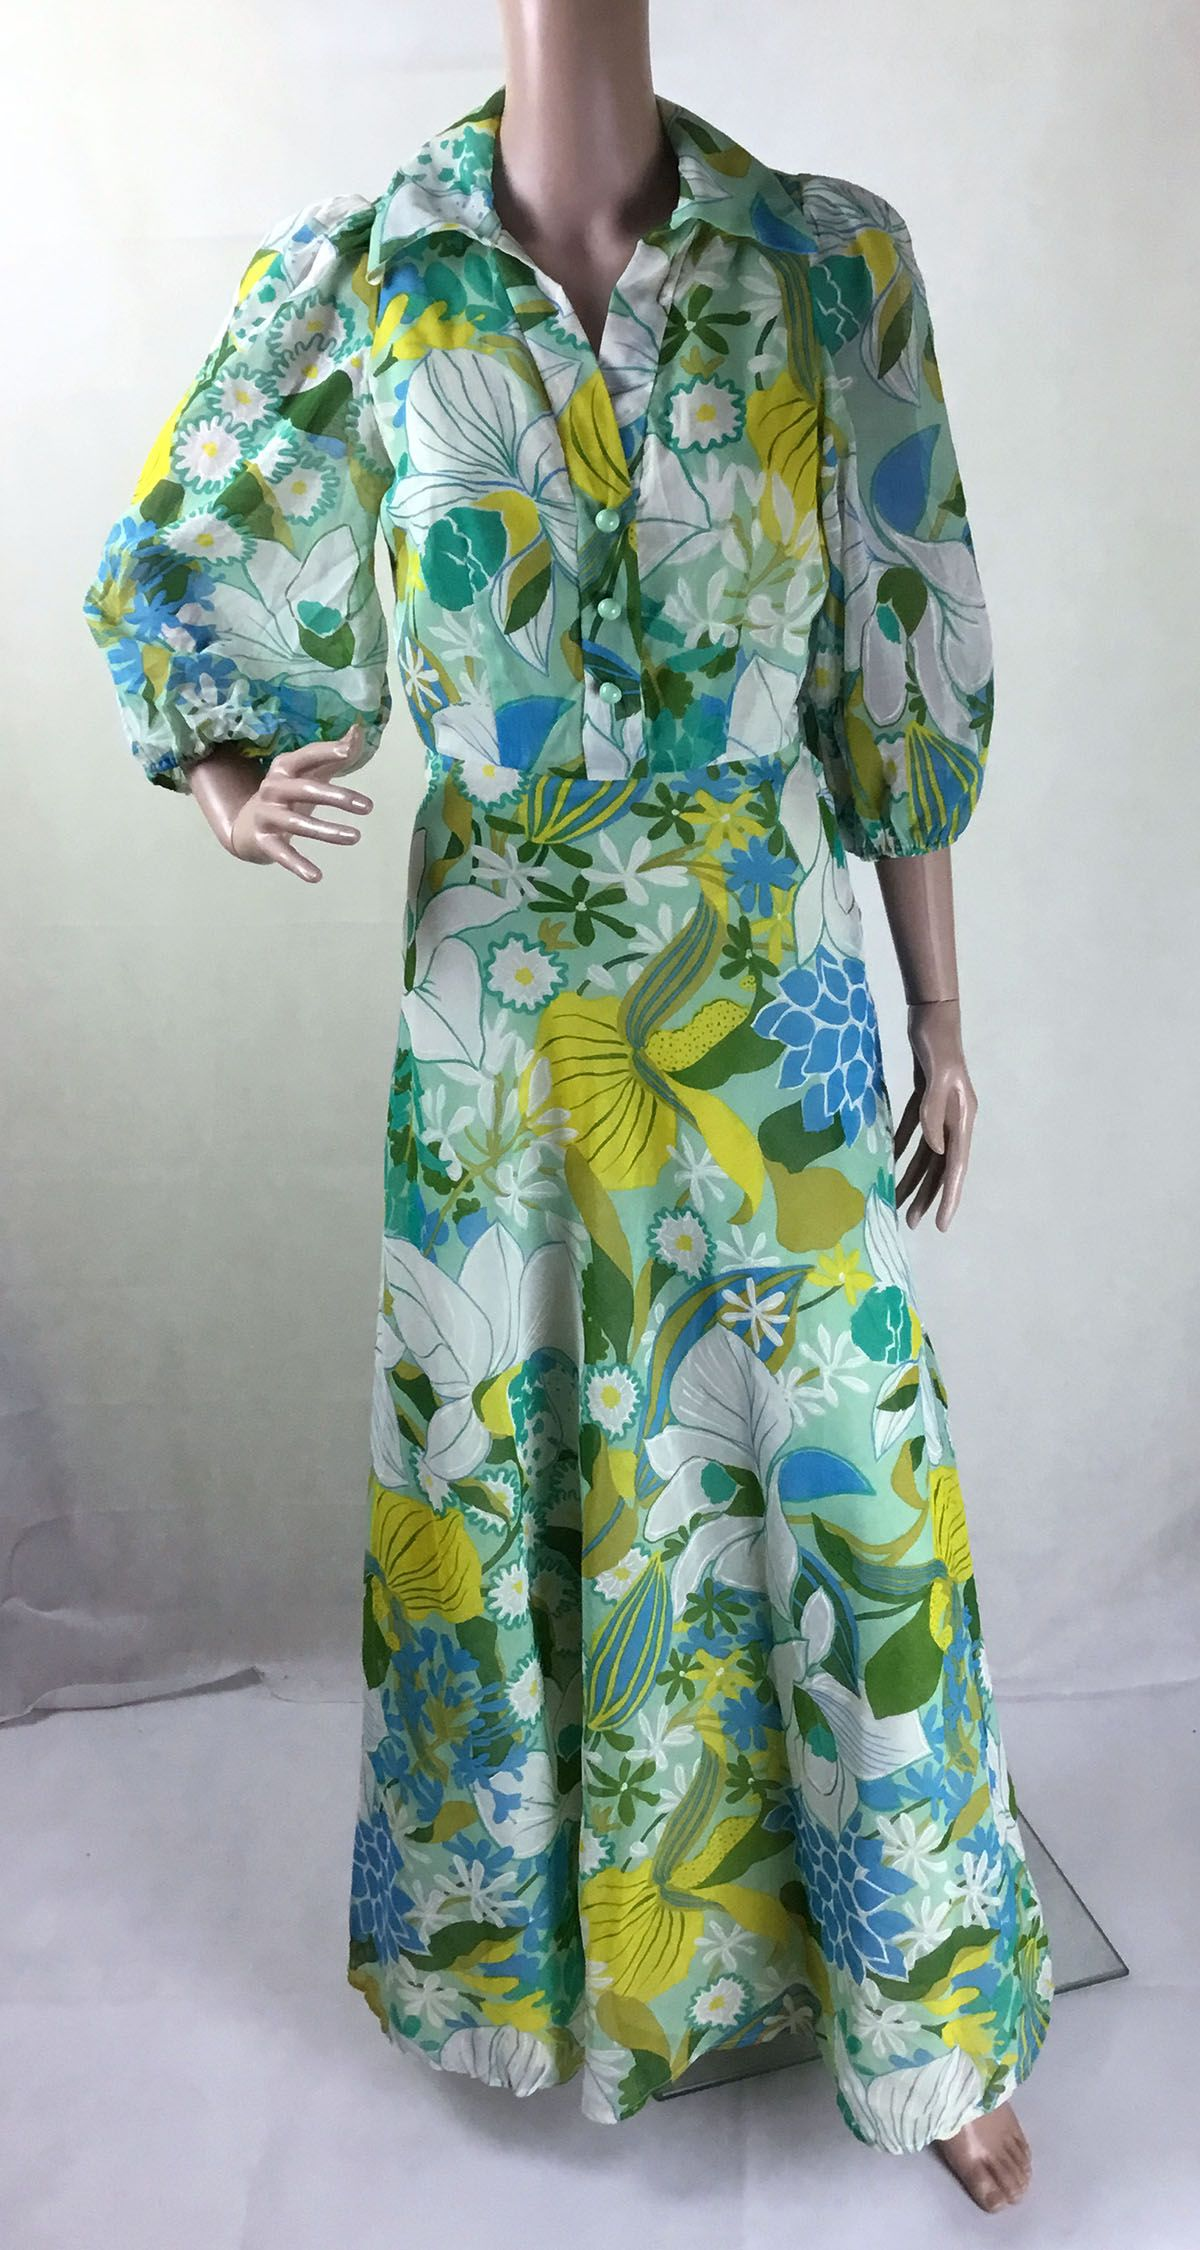 Original s green floral maxi dress from my vintage uk size